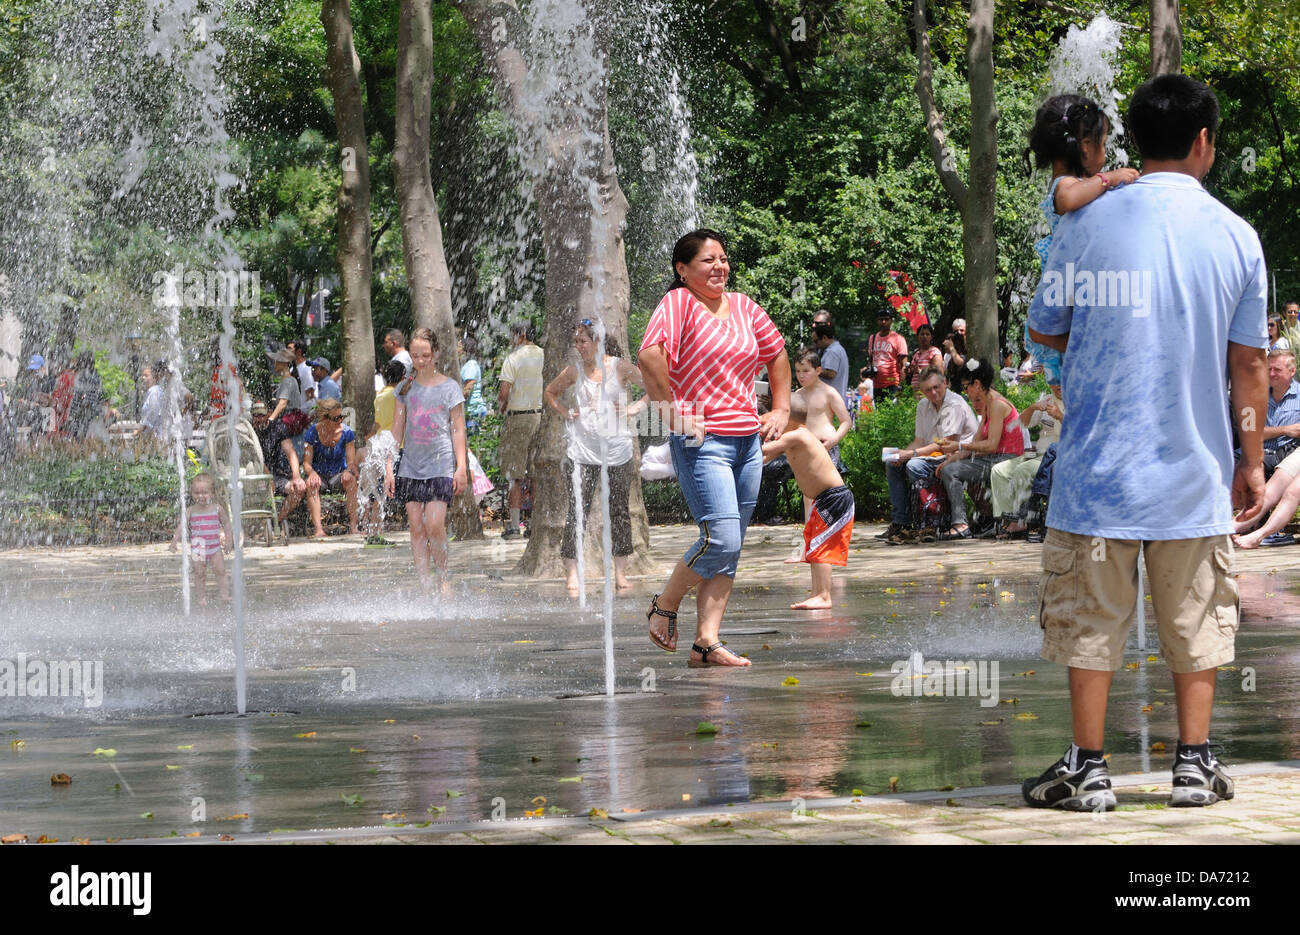 On a hot, humid July 4, adults and children cooled off in a fountain in Battery Park, in lower Manhattan. - Stock Image